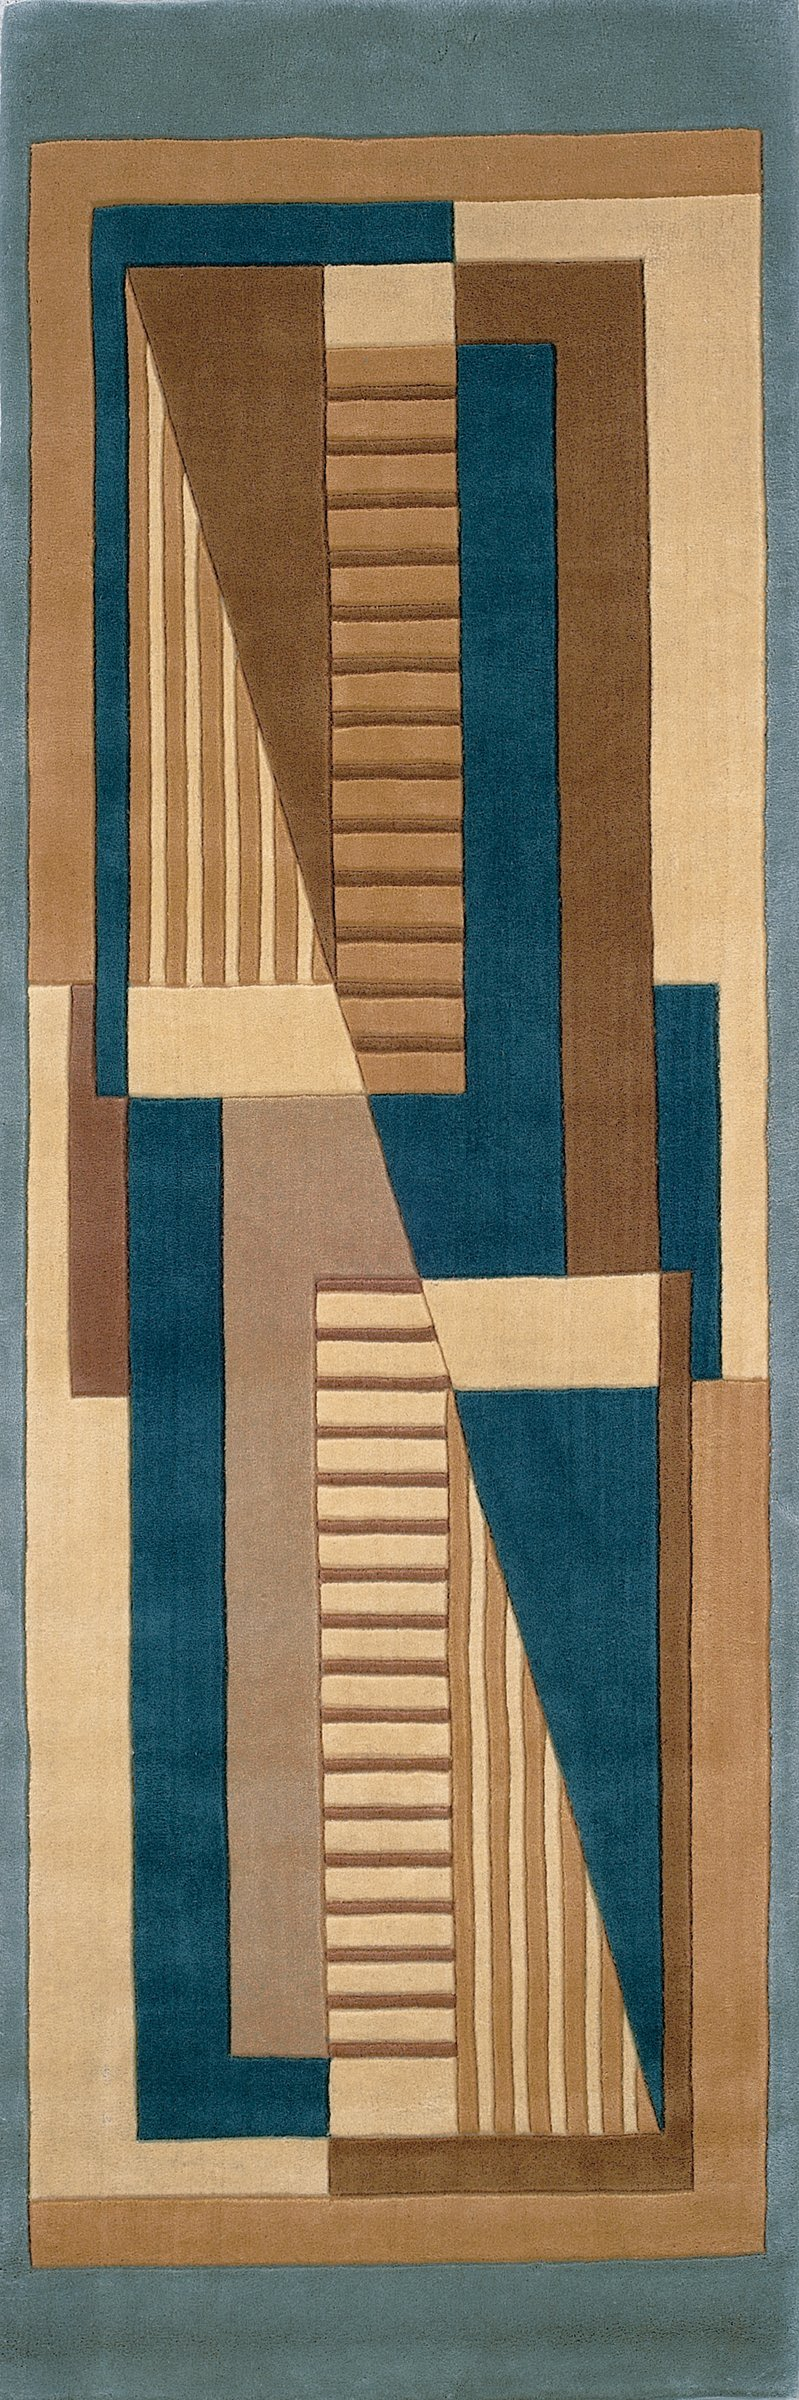 Momeni Rugs NEWWANW-06BLU26C0 New Wave Collection, 100% Wool Hand Carved & Tufted Contemporary Area Rug, 2'6'' x 12' Runner, Blue by Momeni Rugs